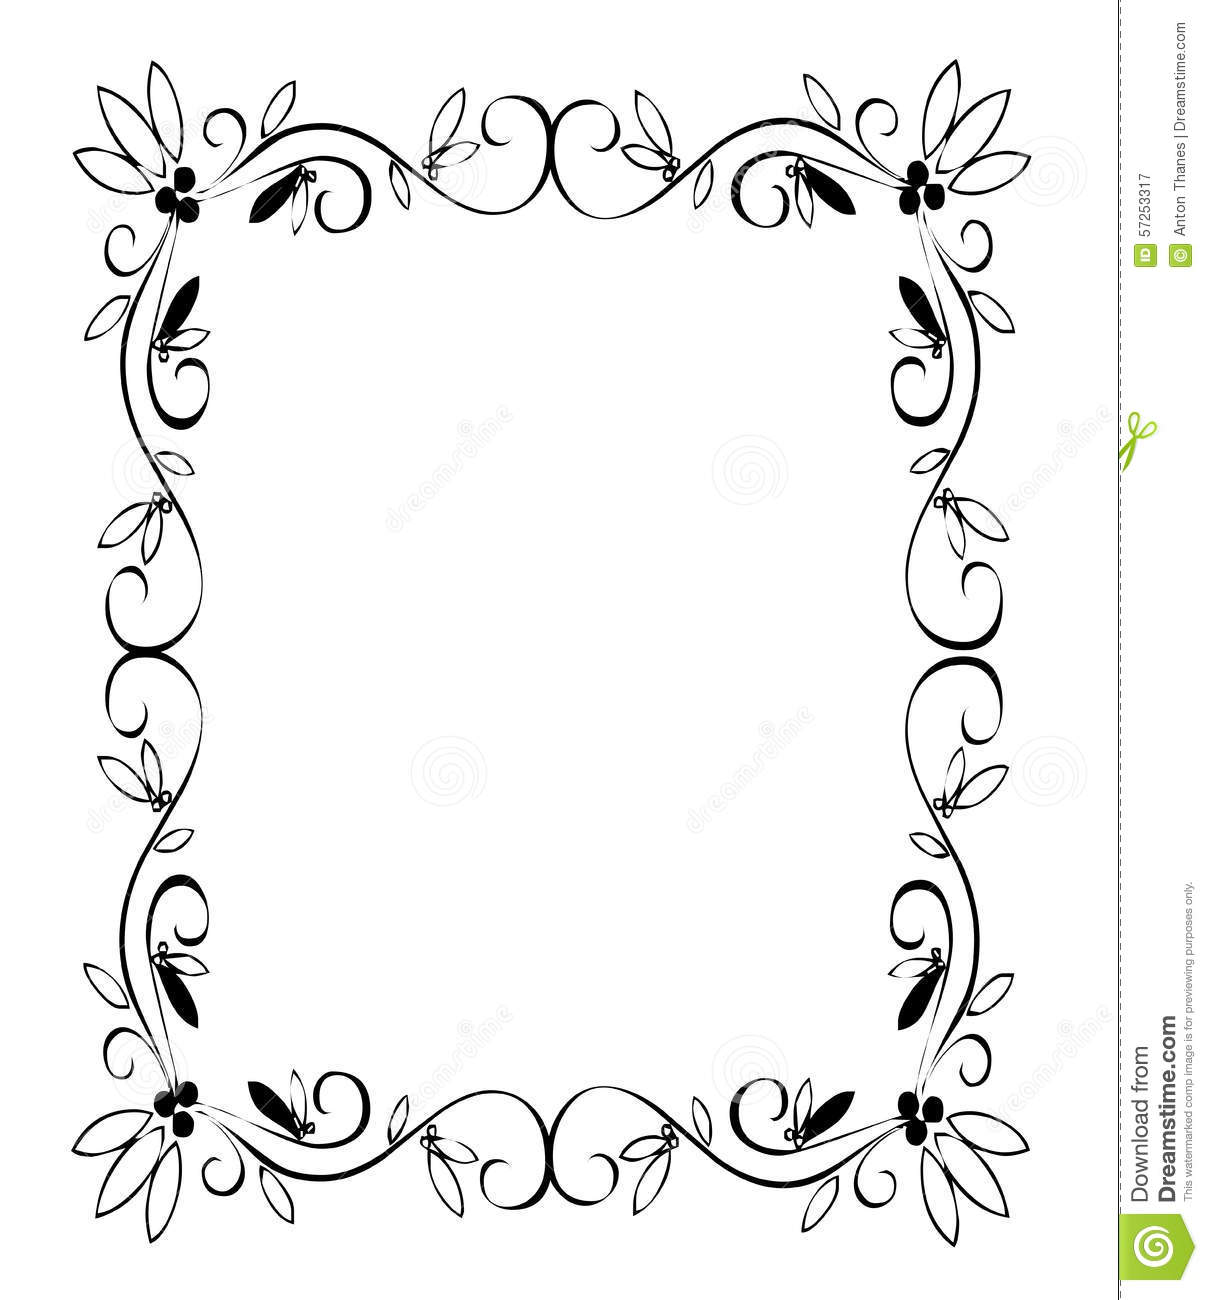 Fancy Page Border Stock Illustration - Image: 57253317